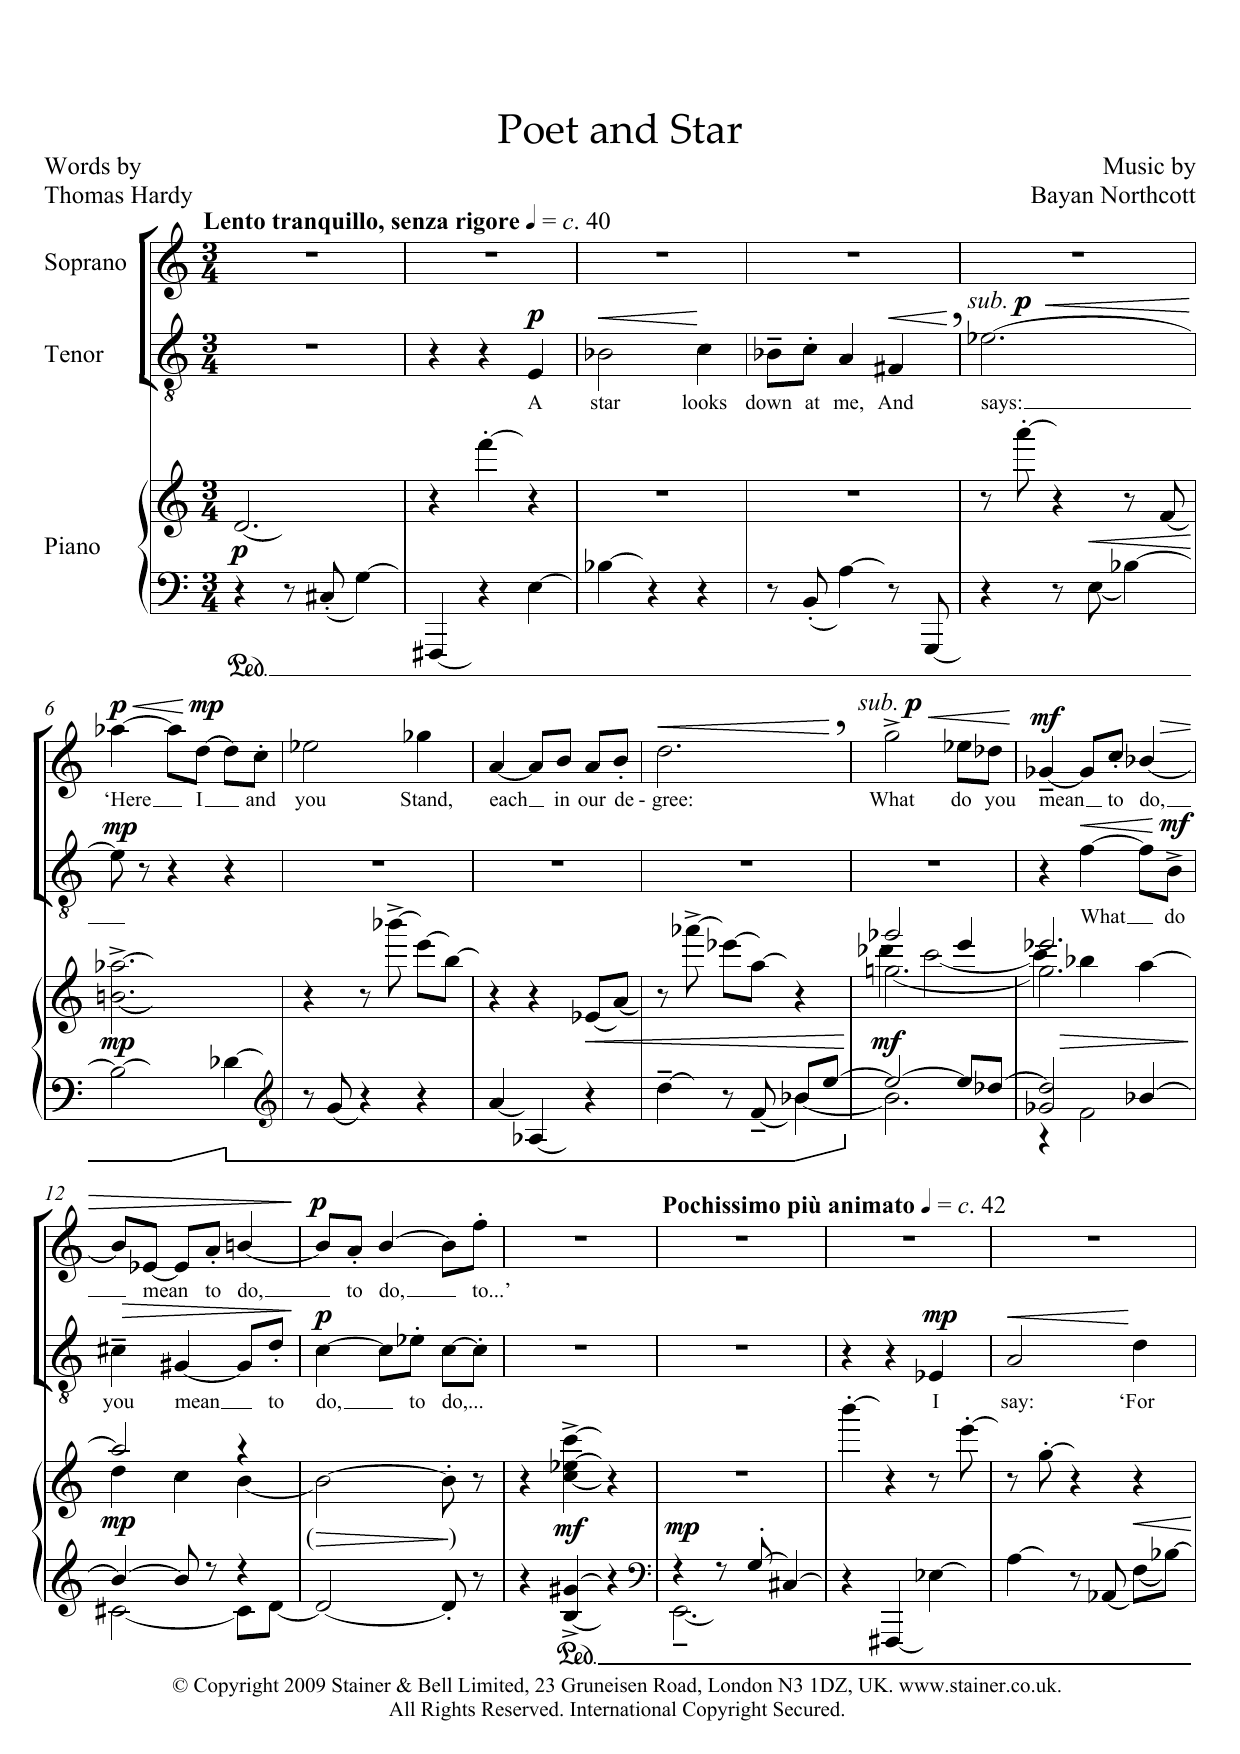 Poet and Star (for soprano, tenor and piano) (Piano & Vocal)